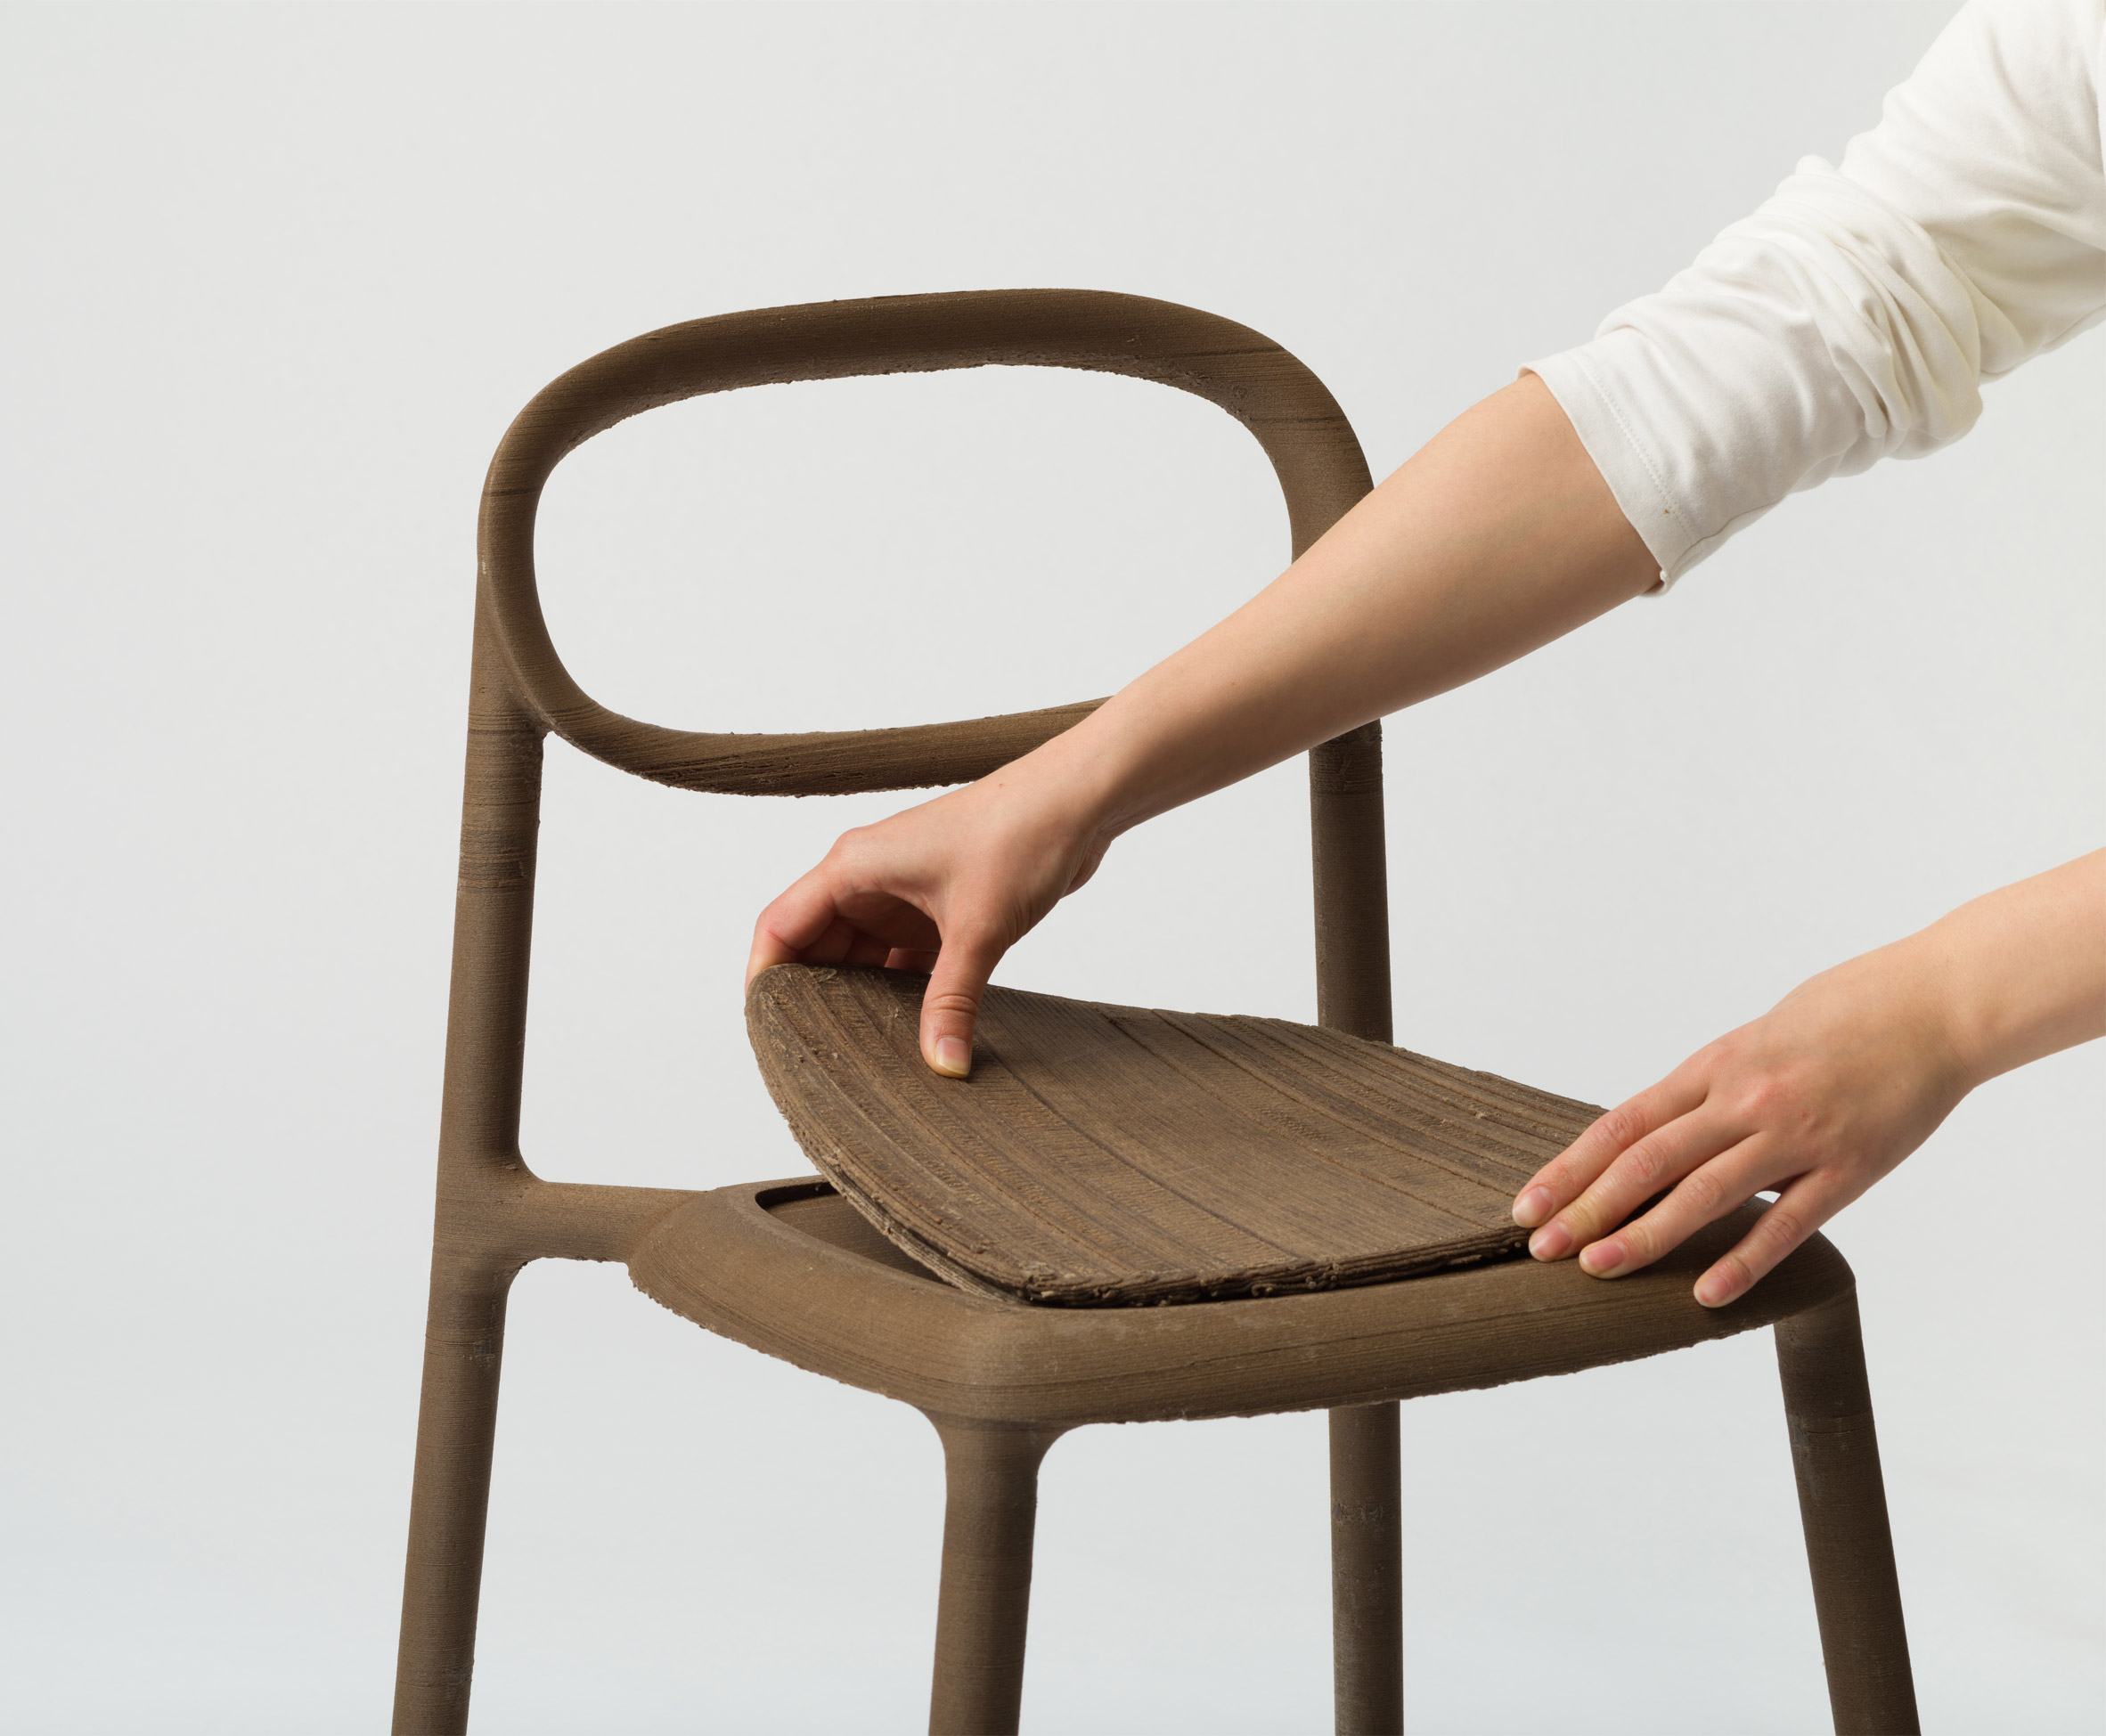 Nataša Perković makes textured designs from palm oil byproducts